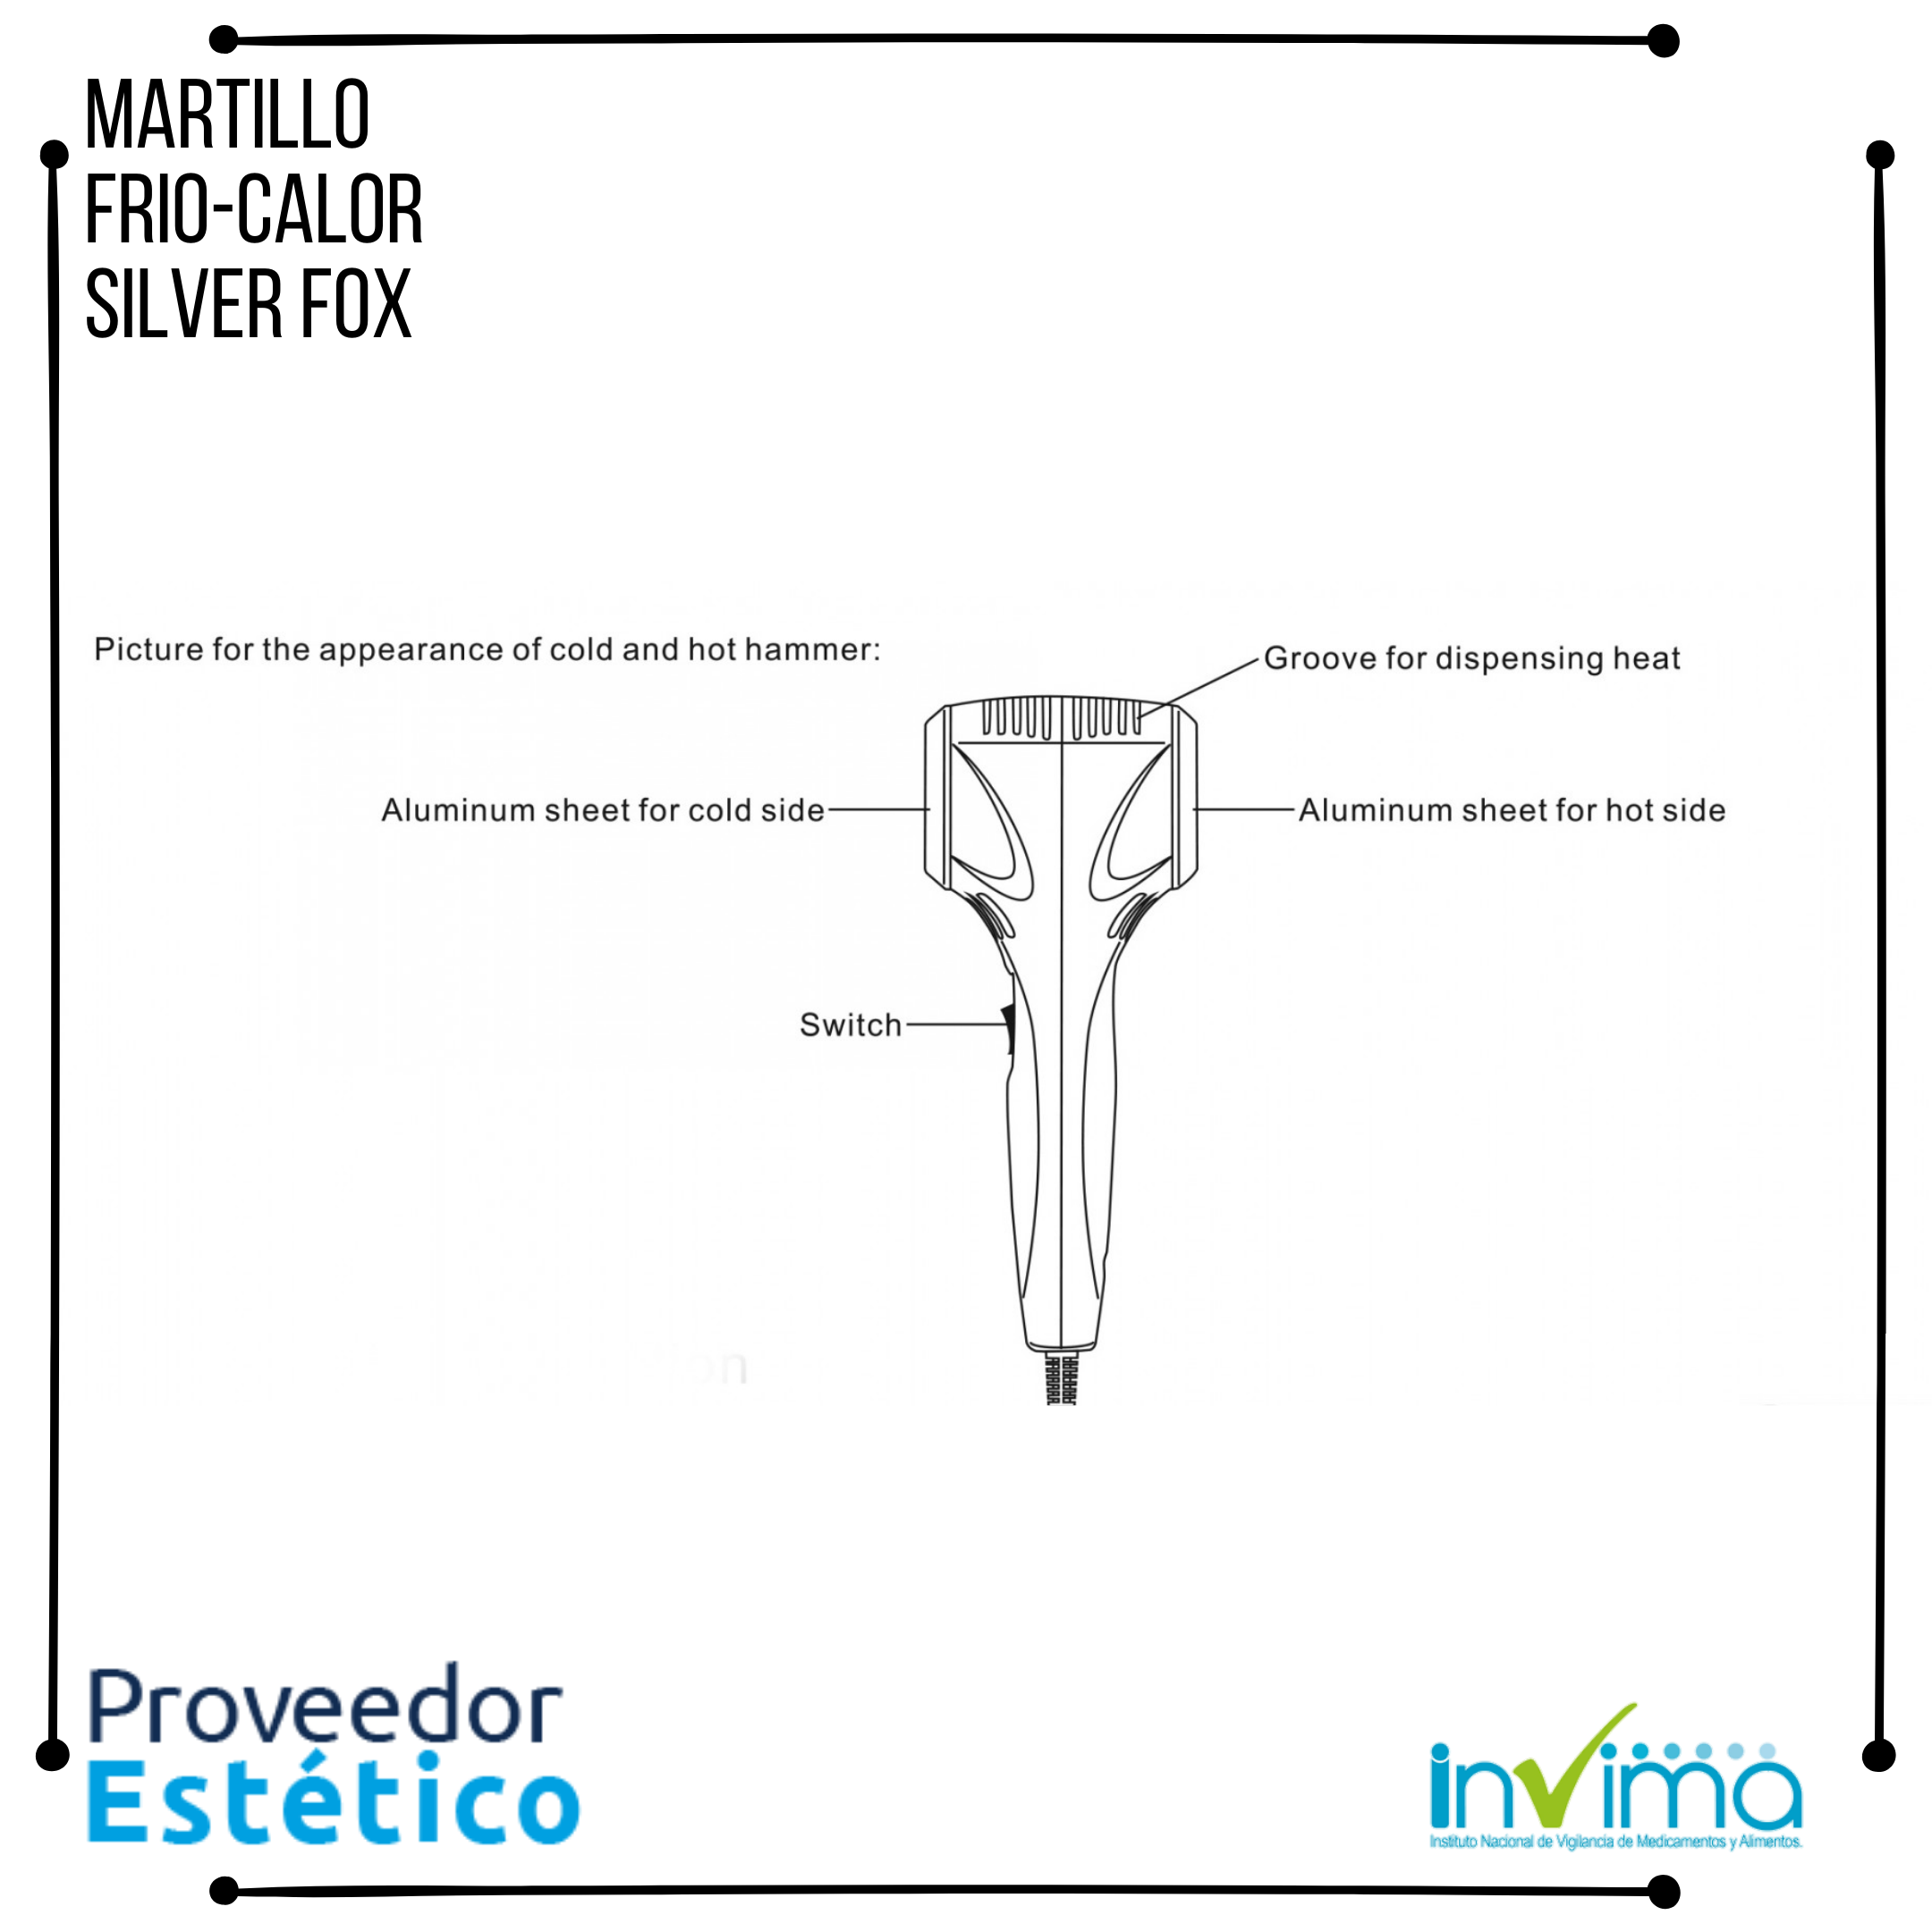 https://0201.nccdn.net/1_2/000/000/16d/d84/martillo-frio-calor-silver-fox--2-.png